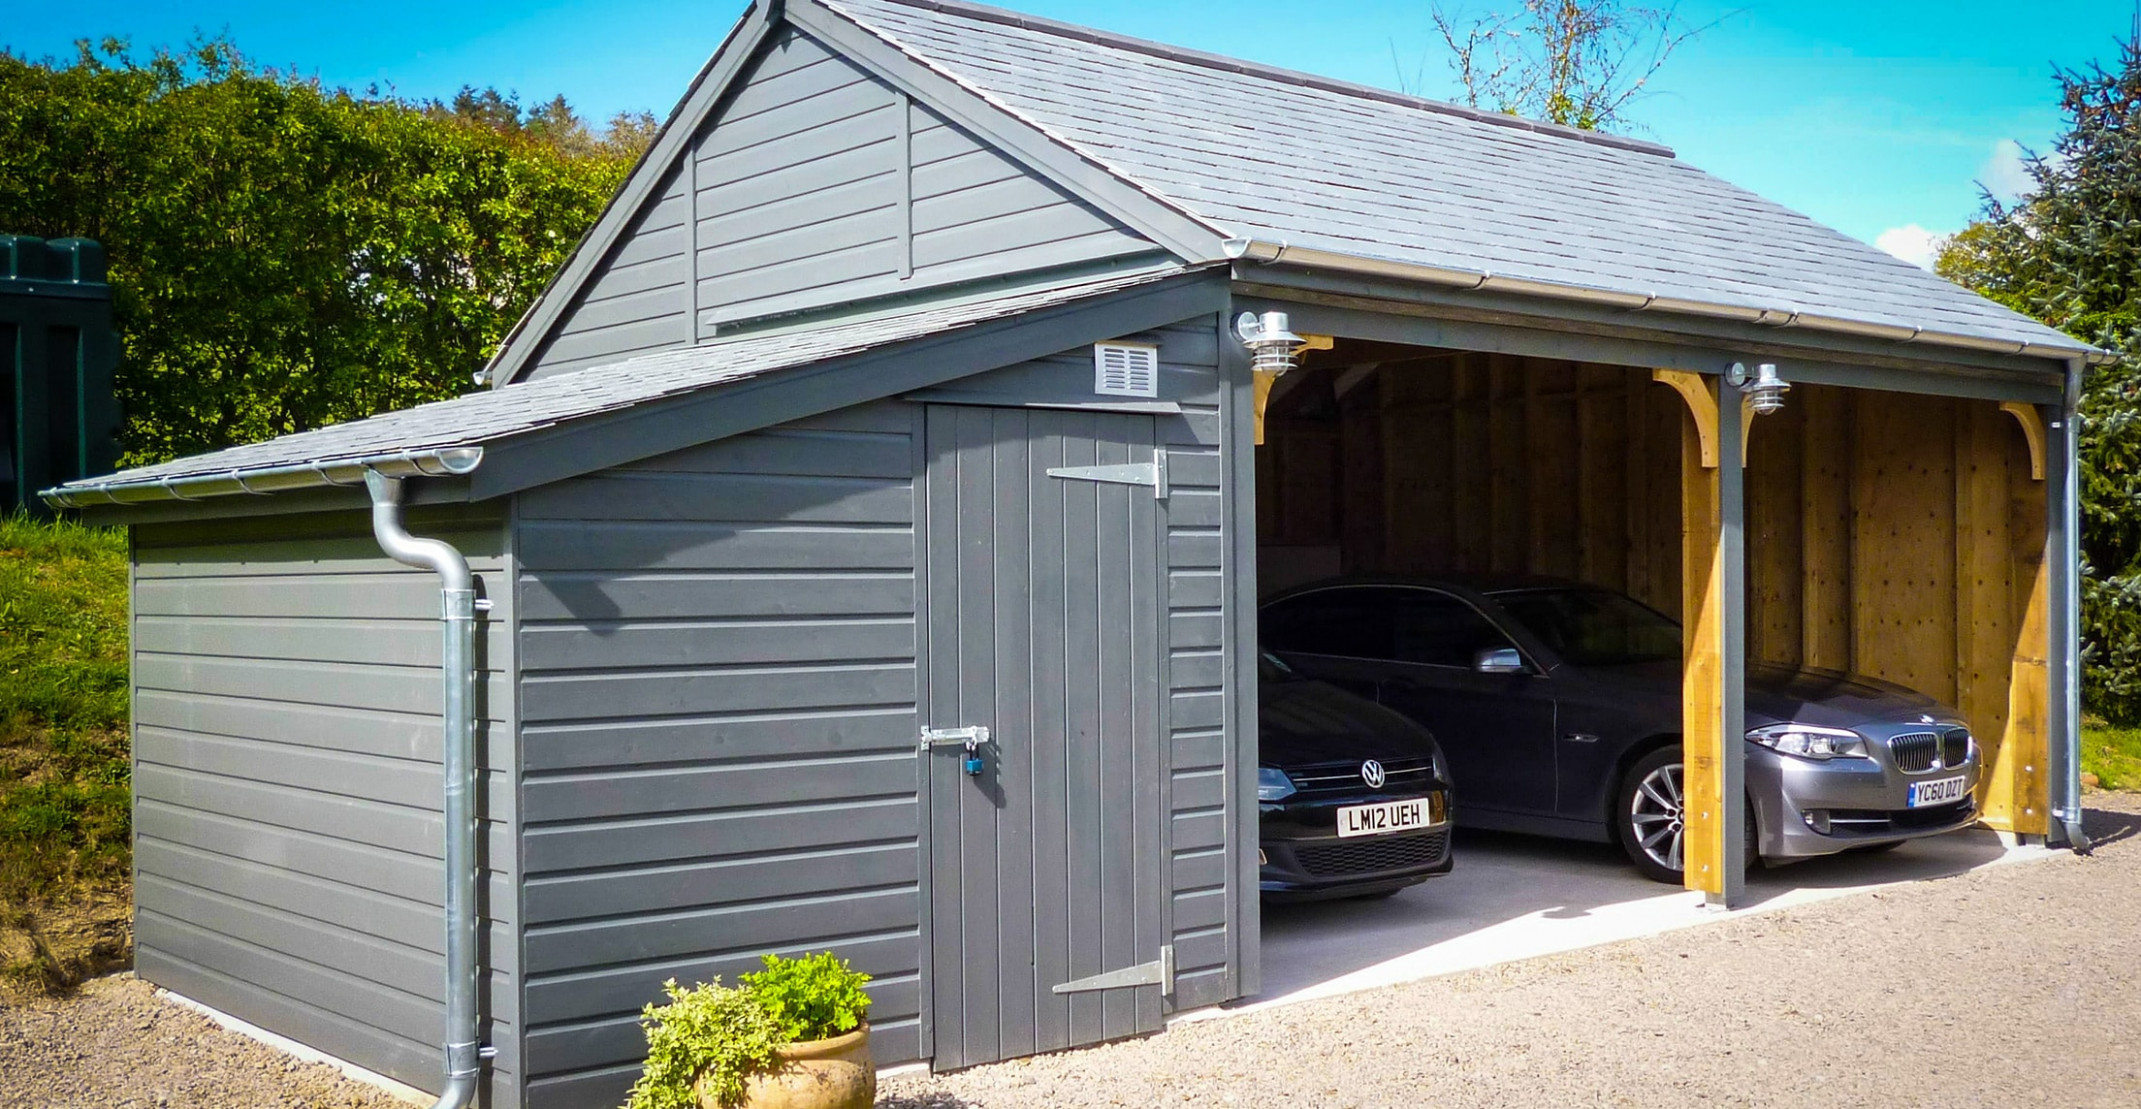 Wooden Carports In Devon By Shields Garden Buildings Wooden Carport With Storage Shed